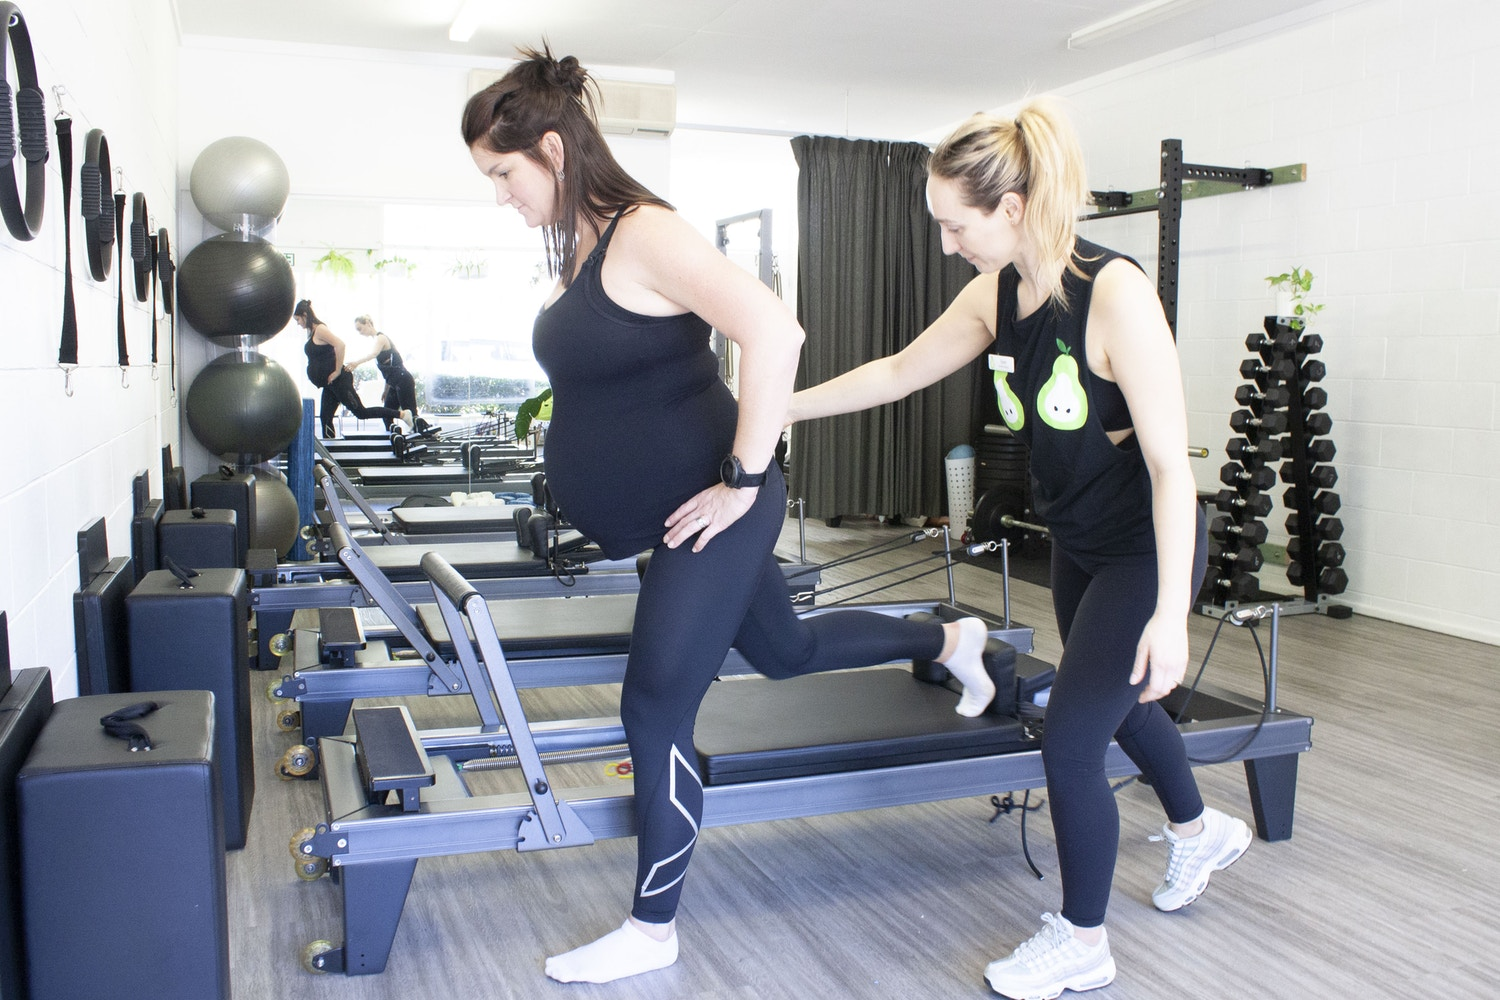 Top tips for pregnancy weight management